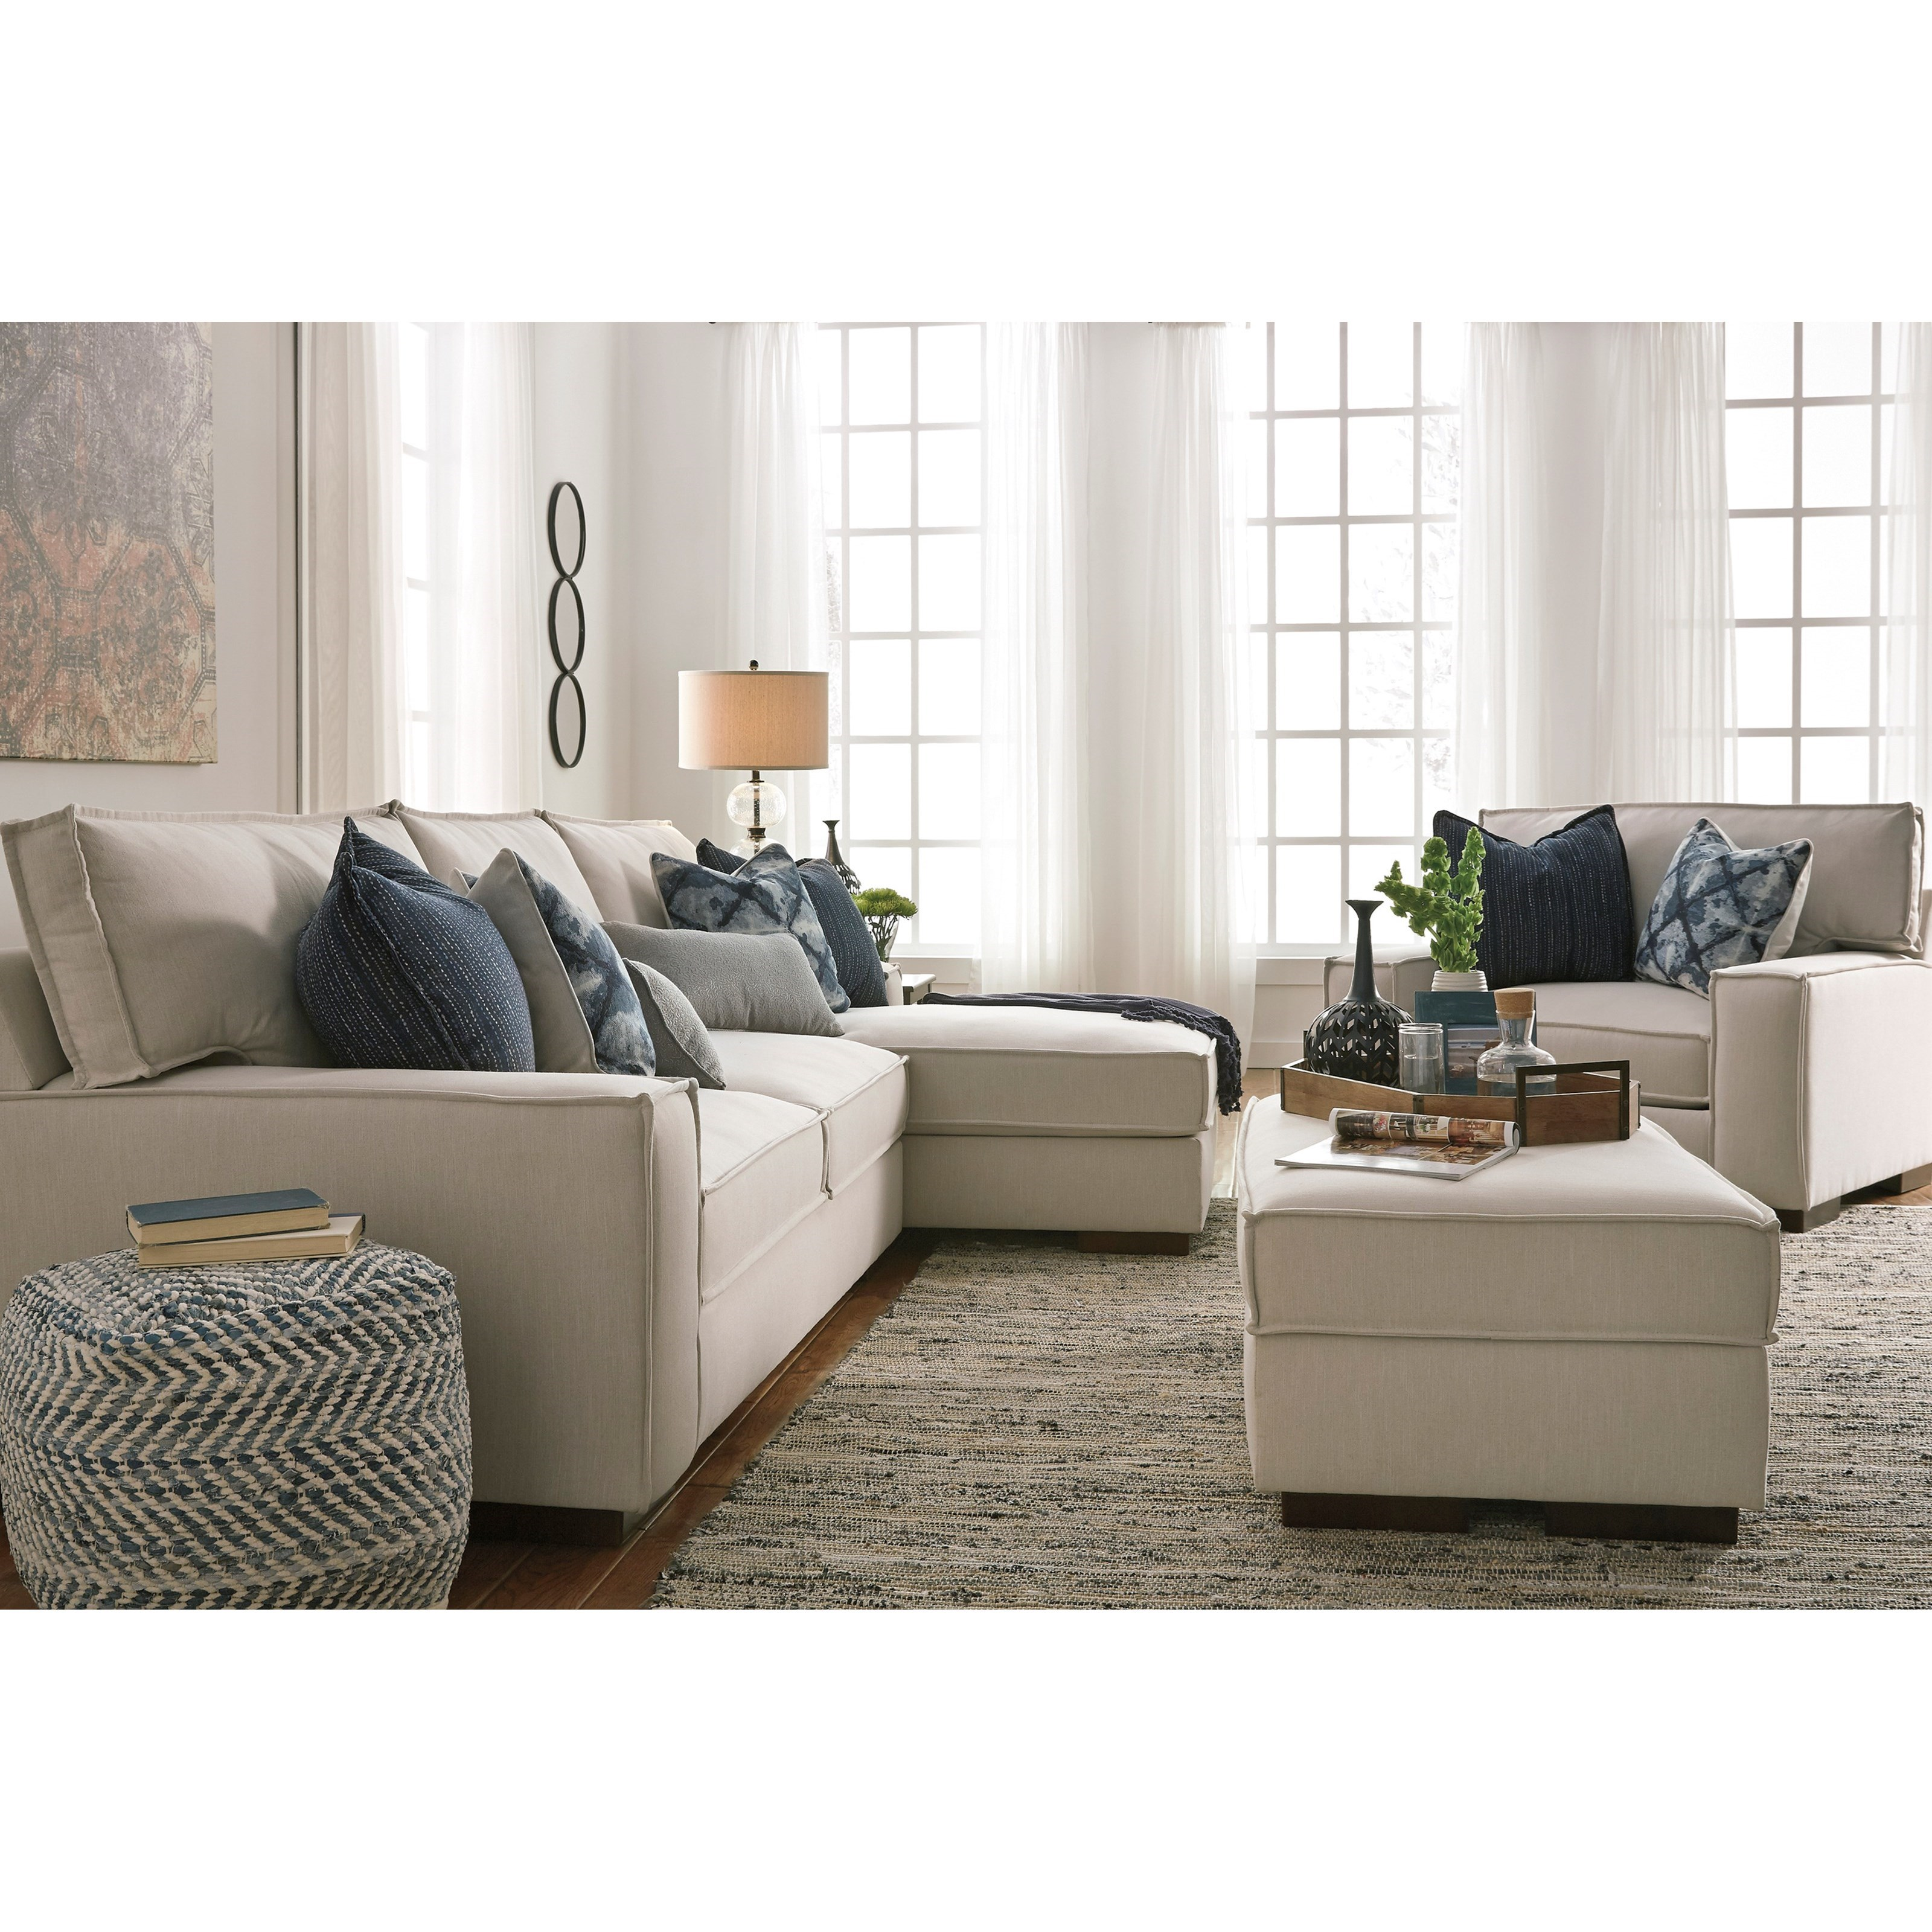 Benchcraft kendleton modern 2 piece sectional with right for Benchcraft chaise lounge